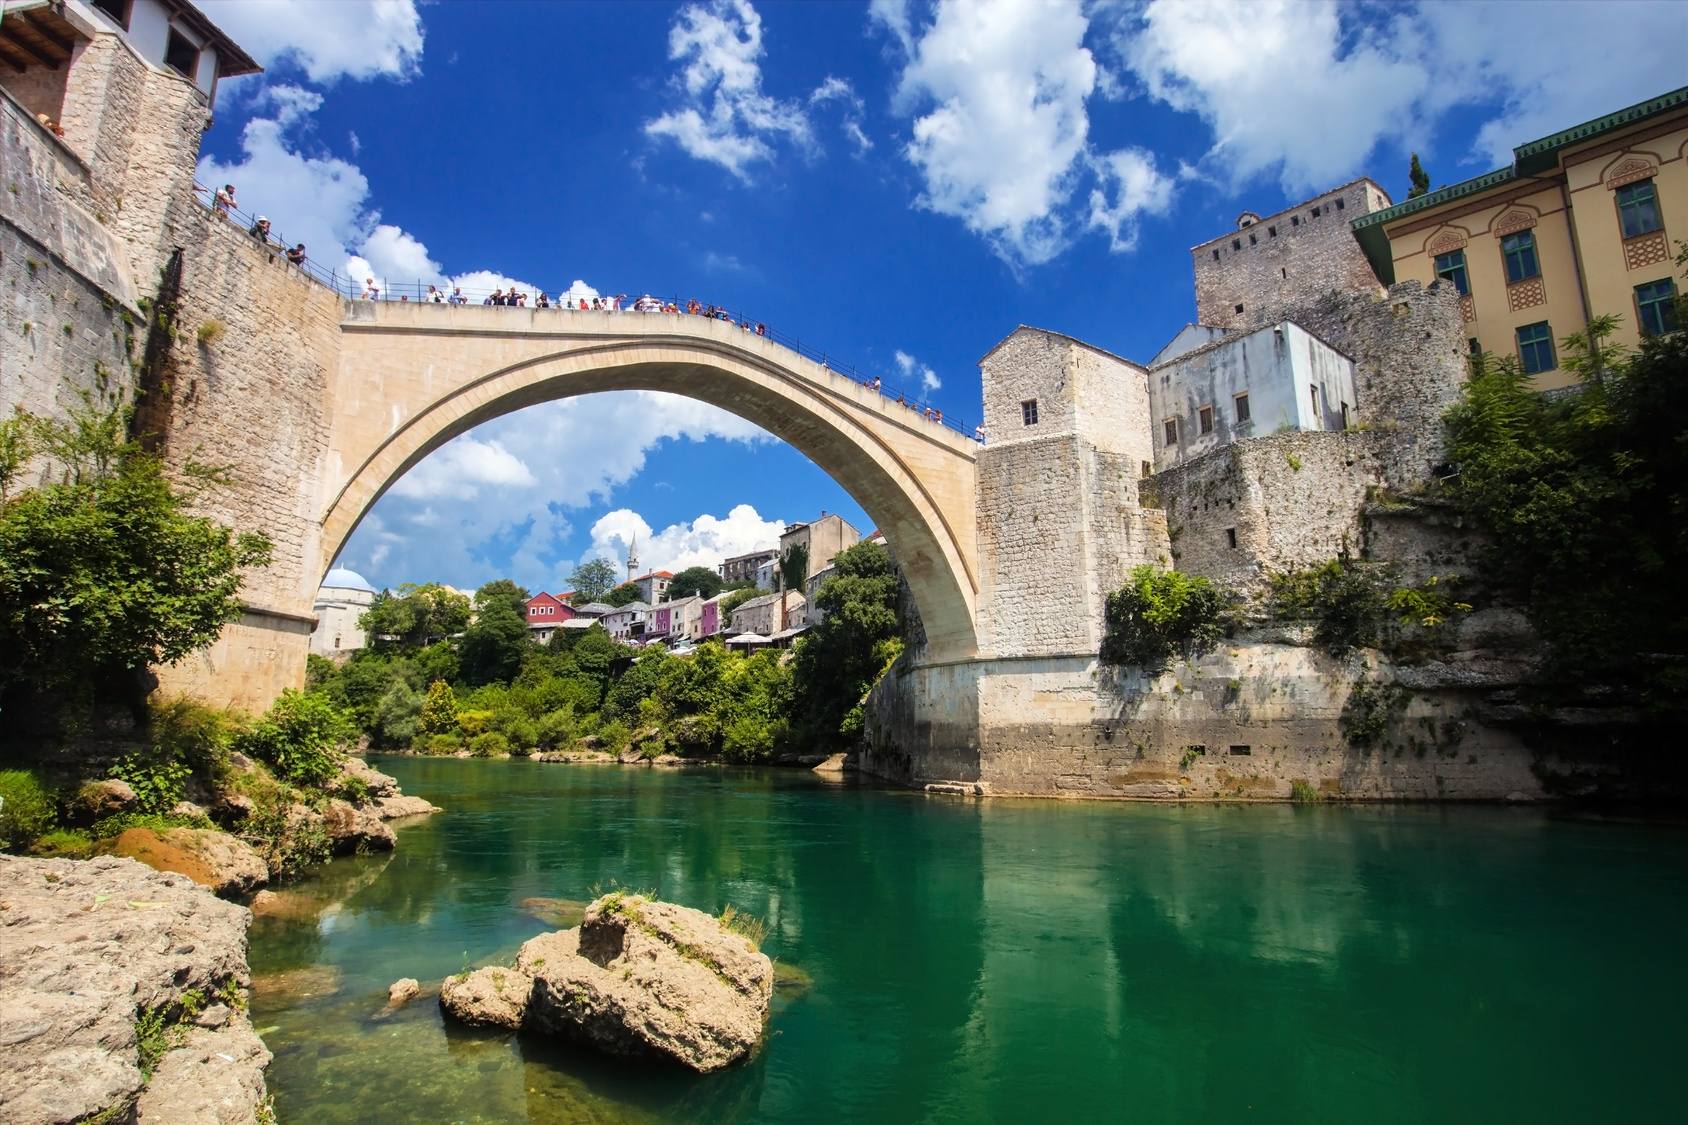 Reconstructed Old Bridge of Mostar in Bosnia-Herzegovina